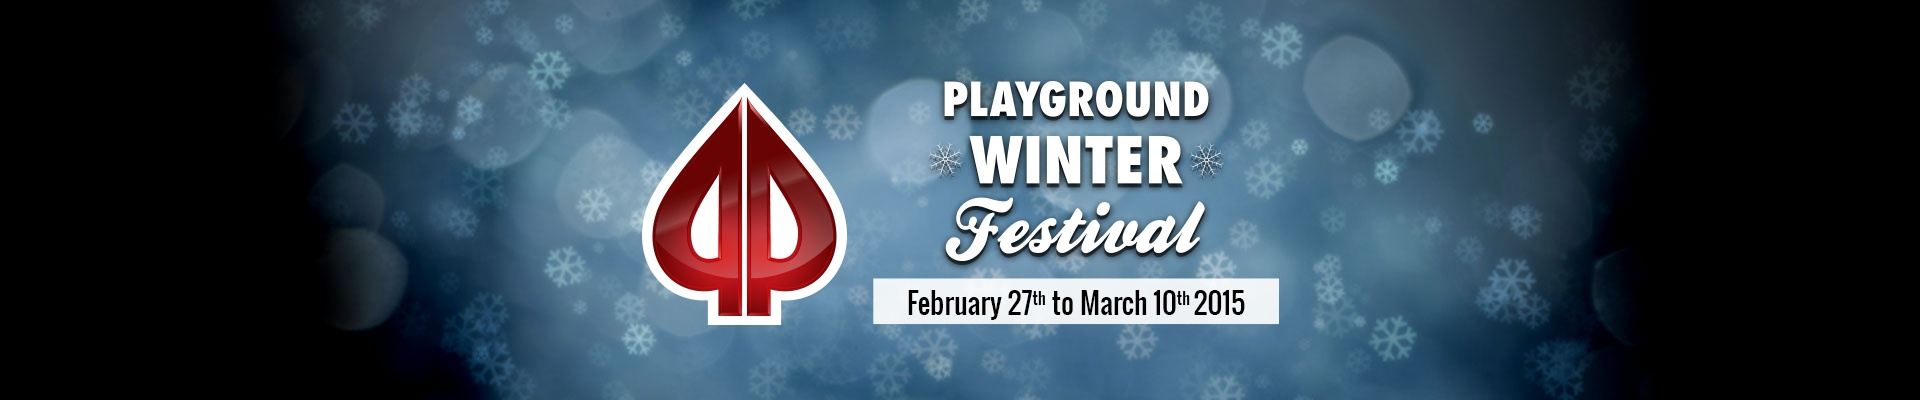 Playground Winter Festival 2015